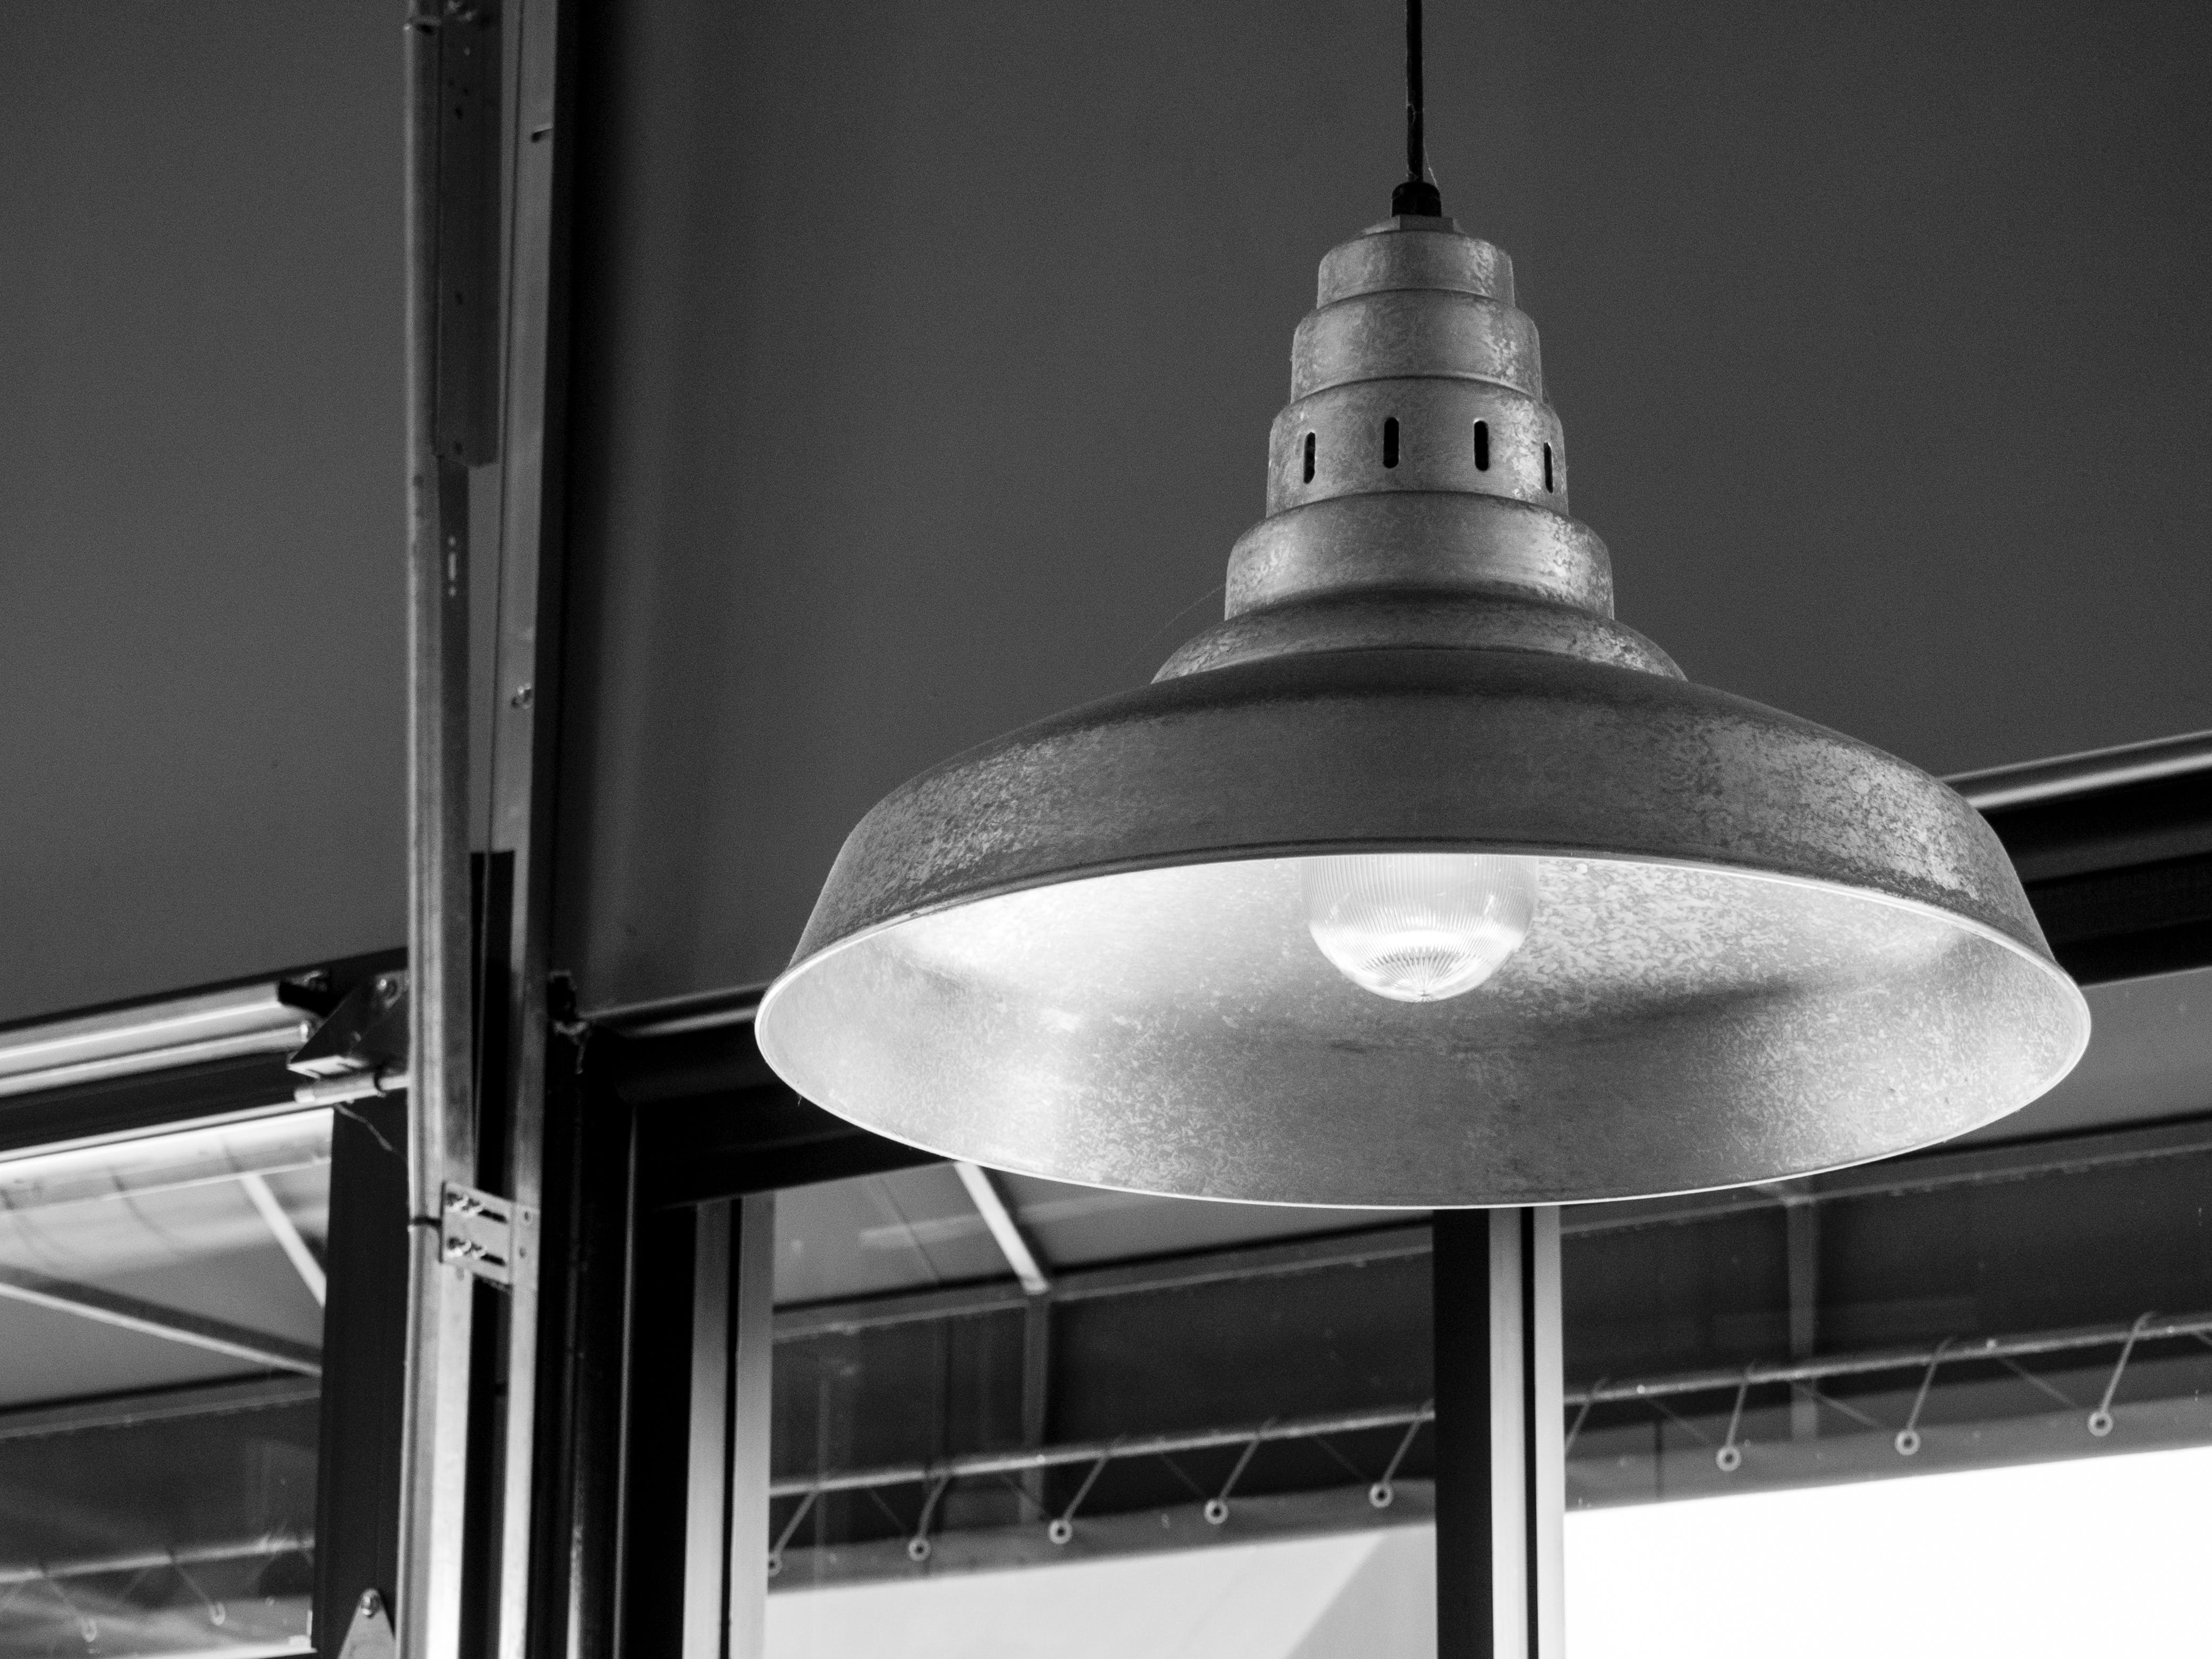 Gray Ceiling Lamp Near Clear Glass Window